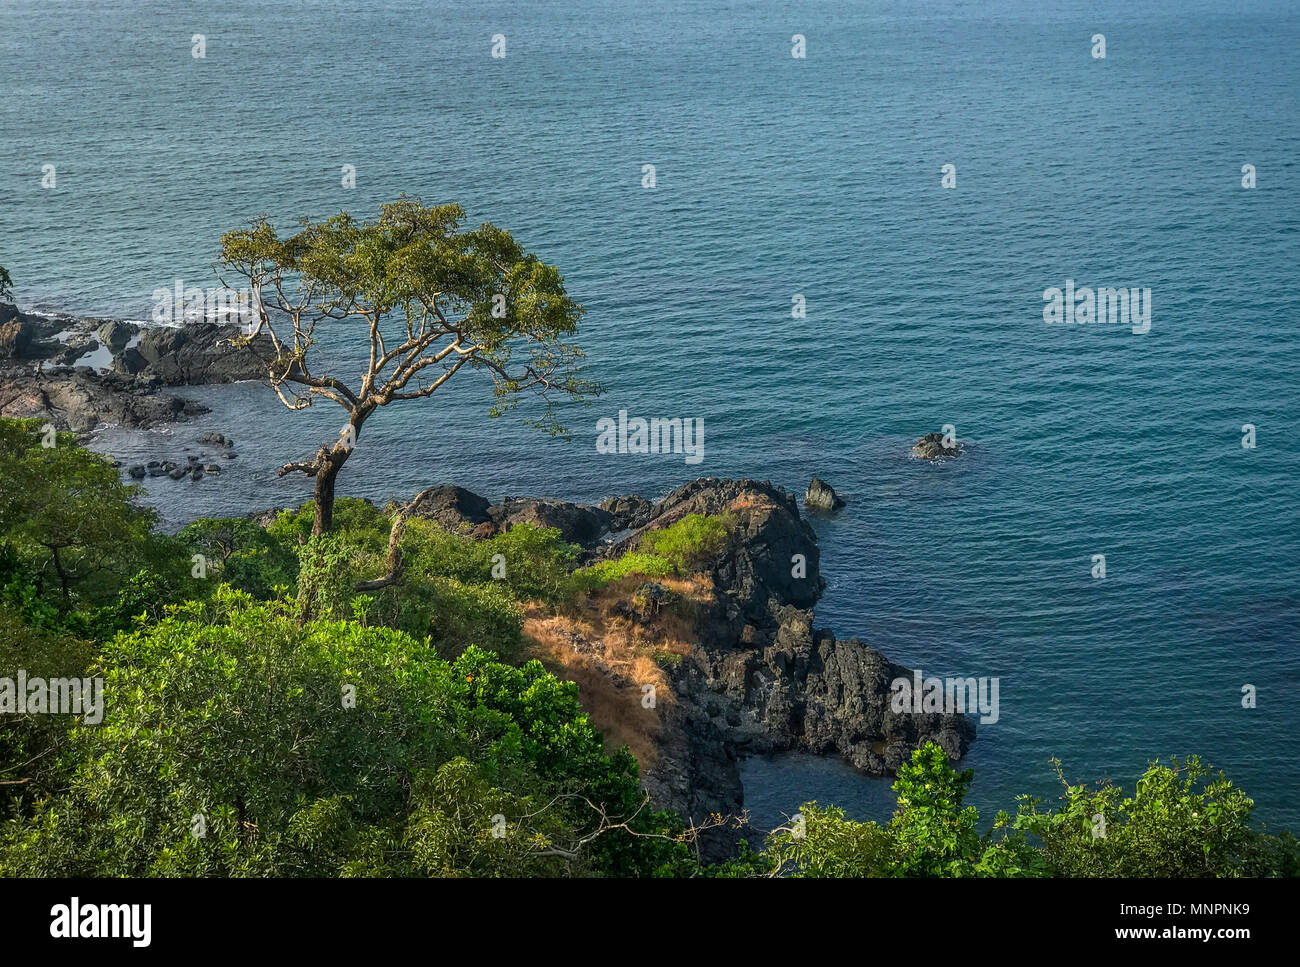 Beautiful view from Cabo de Rama fort. A tree standing tall on the rocks. - Stock Image